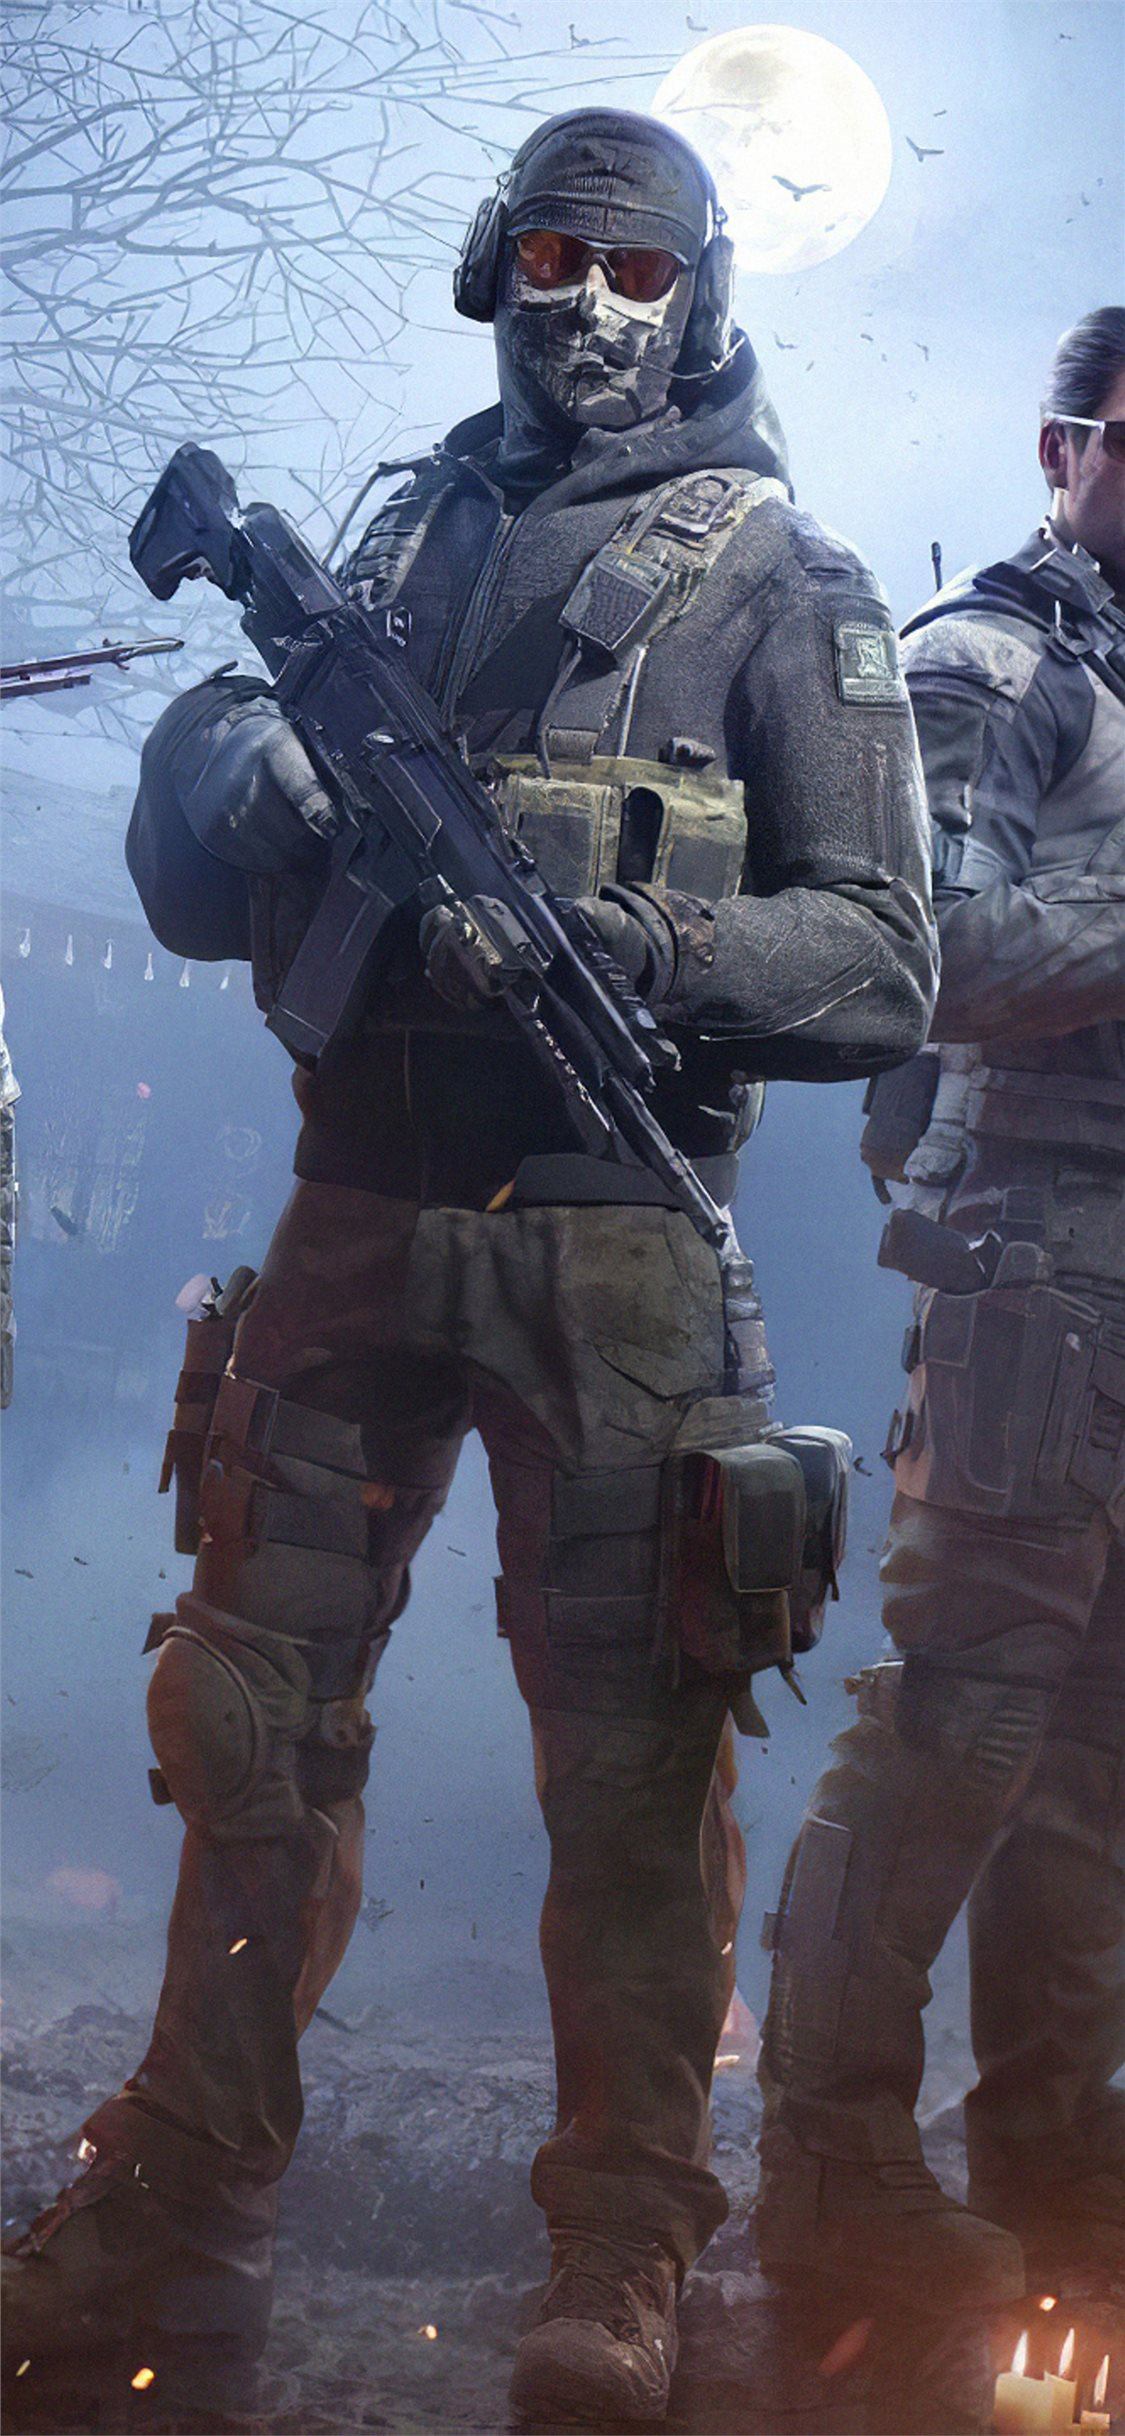 Best Call Of Duty Mobile Iphone X Wallpapers Hd Ilikewallpaper